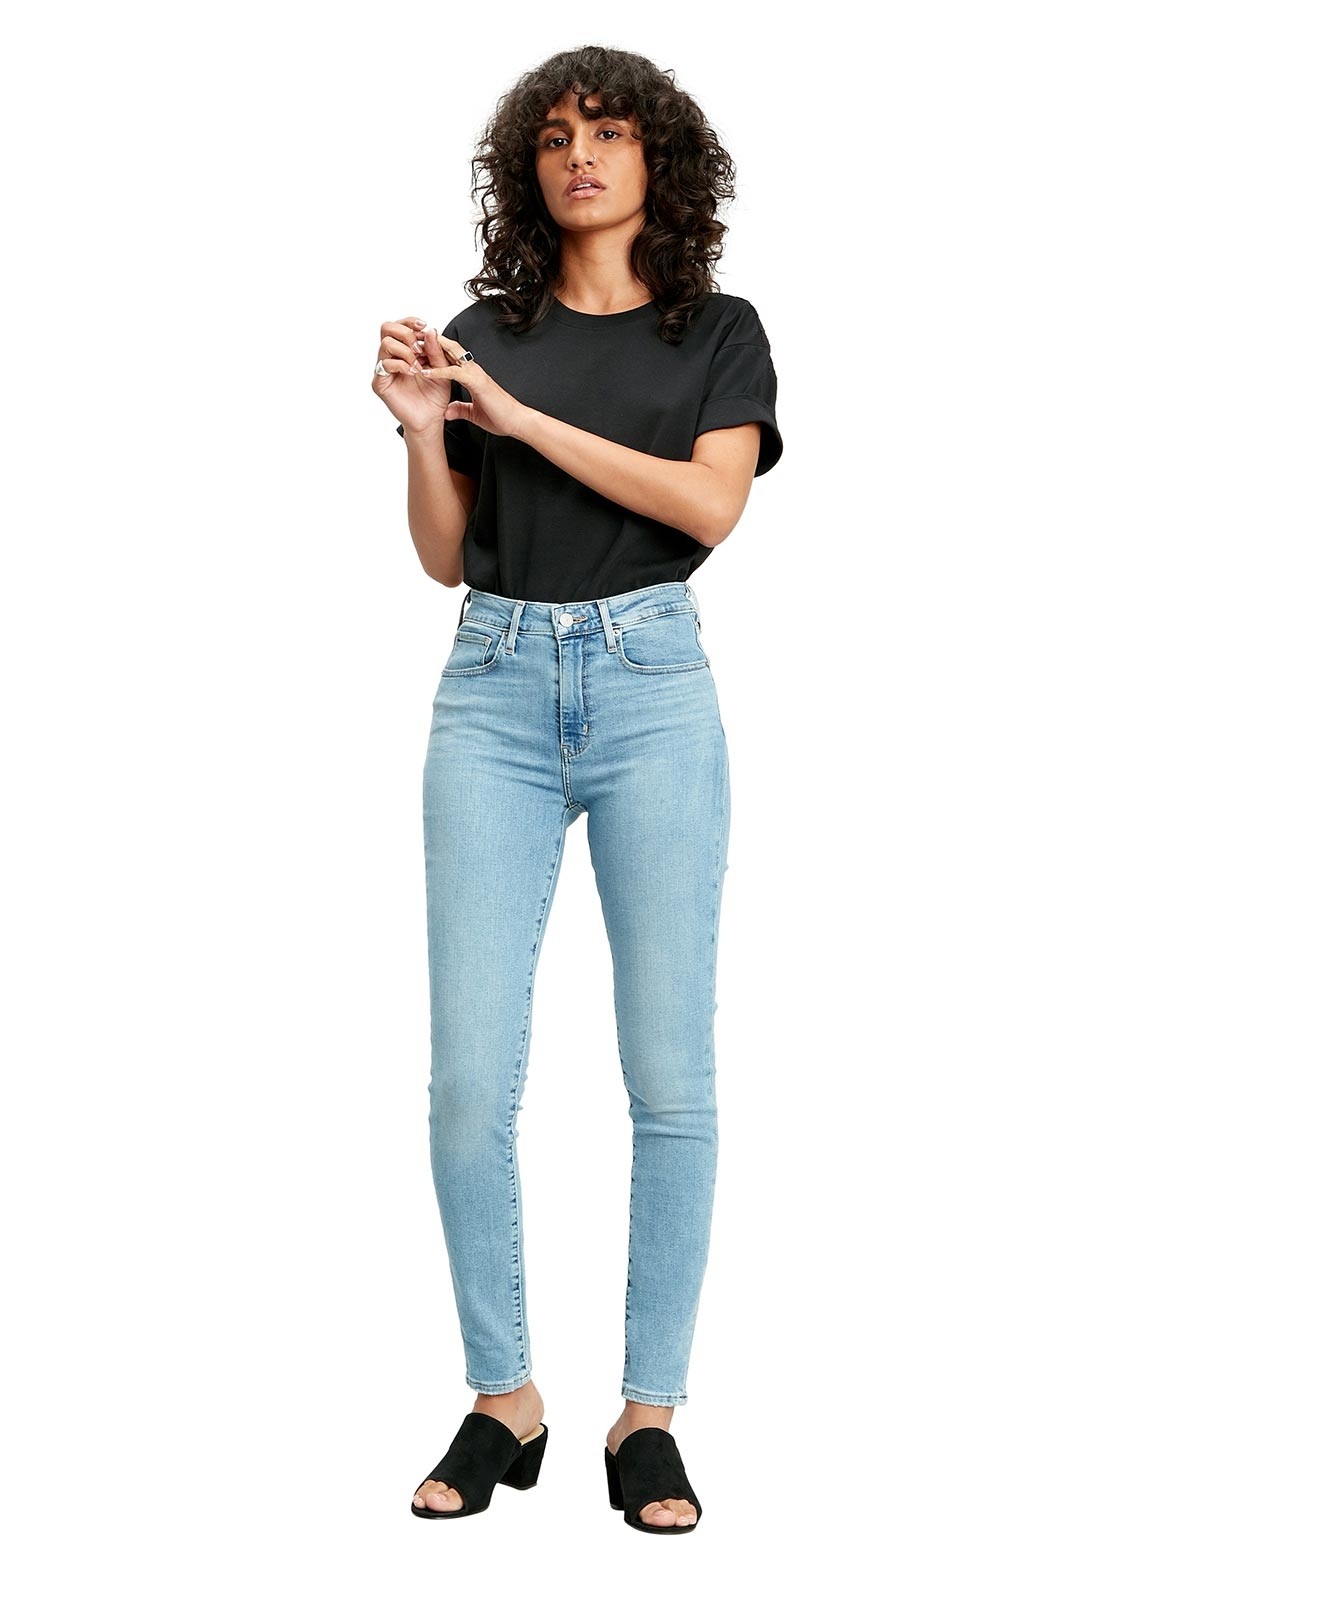 Hosen - Levis High Waisted Jeans 721 High Rise Skinny in Have A Nice Day  - Onlineshop Jeans Meile